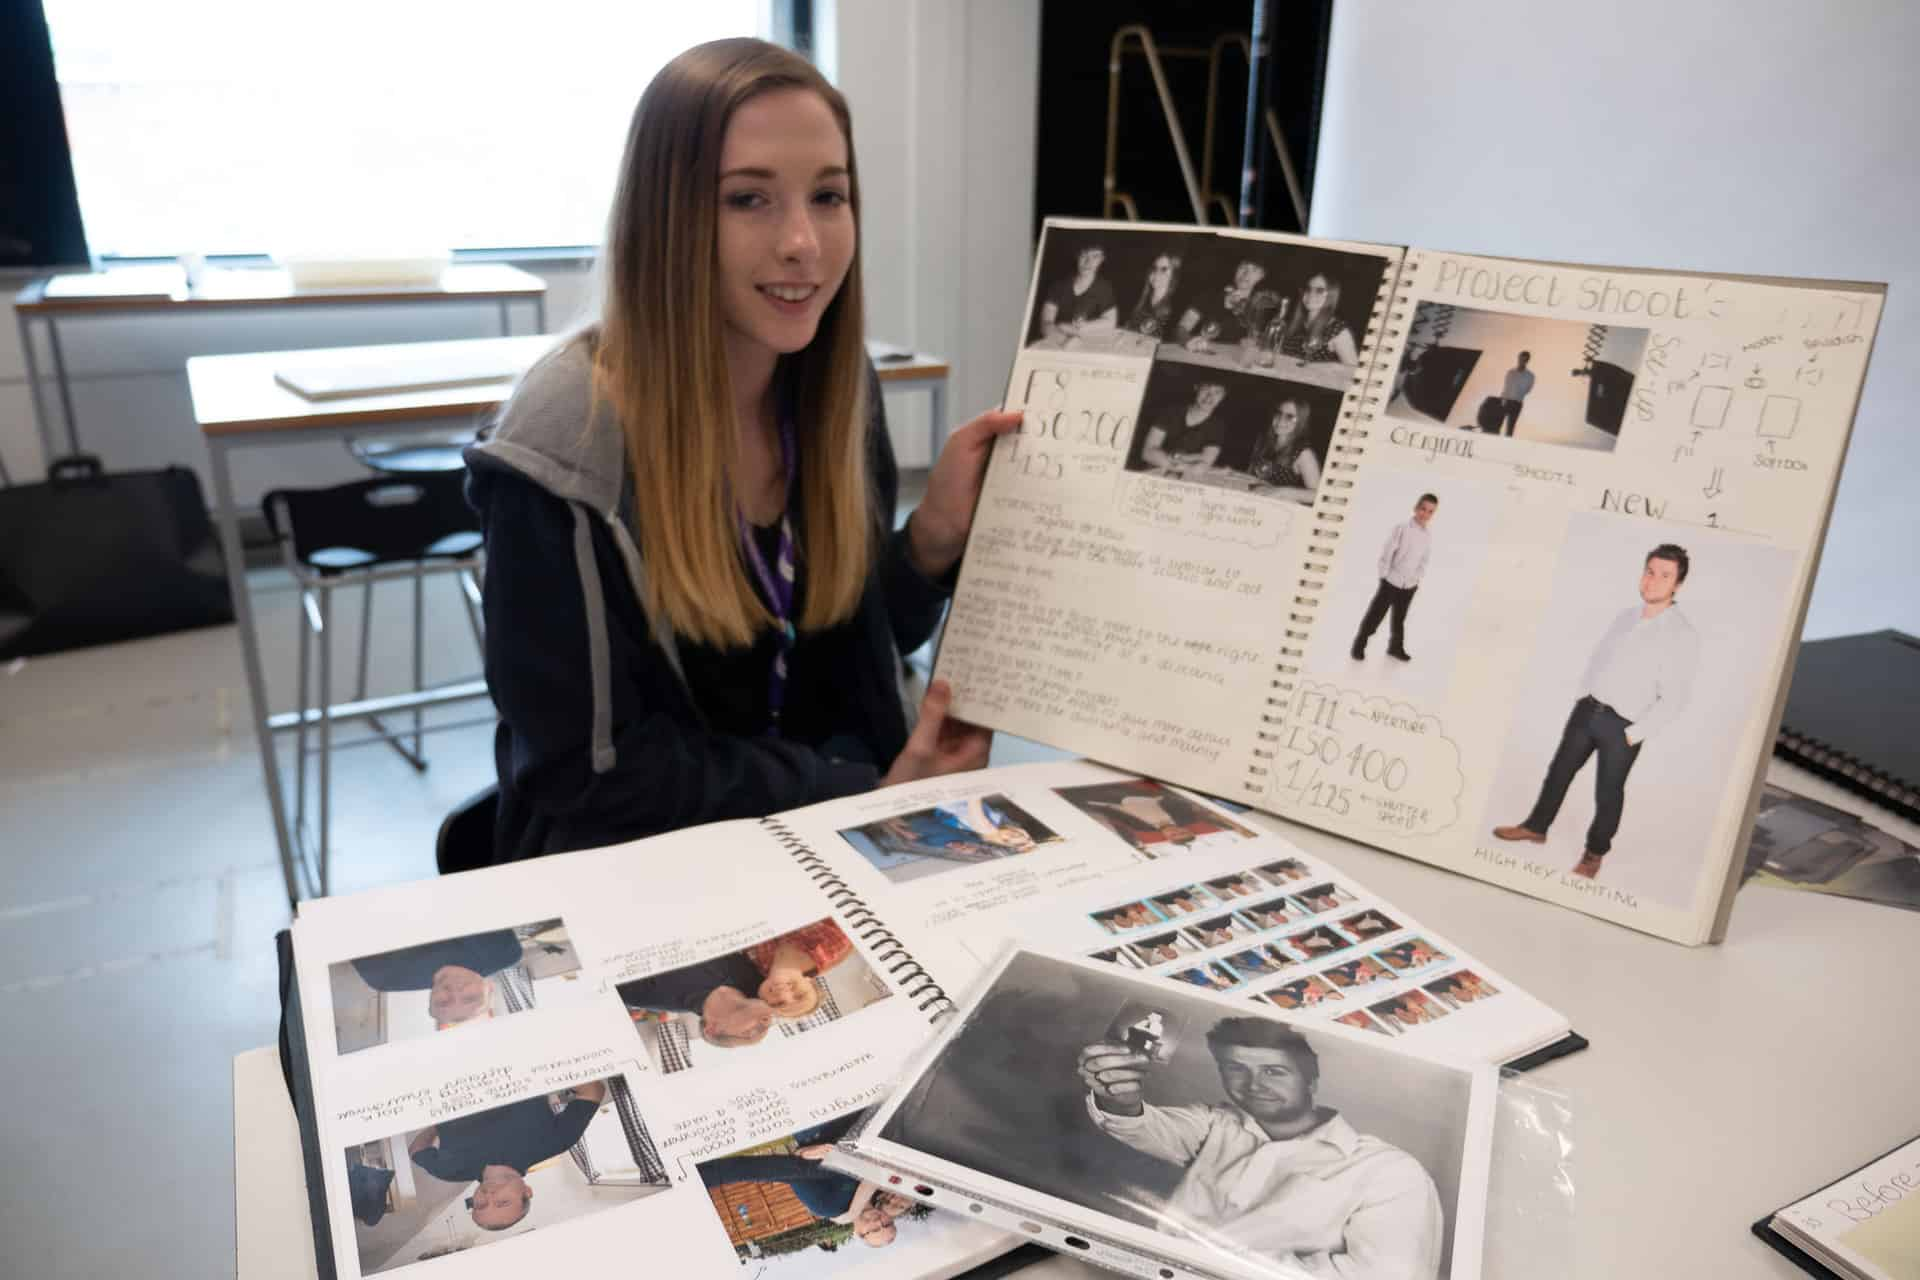 A student at Sandwell College shows off her project book featuring work made with her family collection as part of the Living Memory project